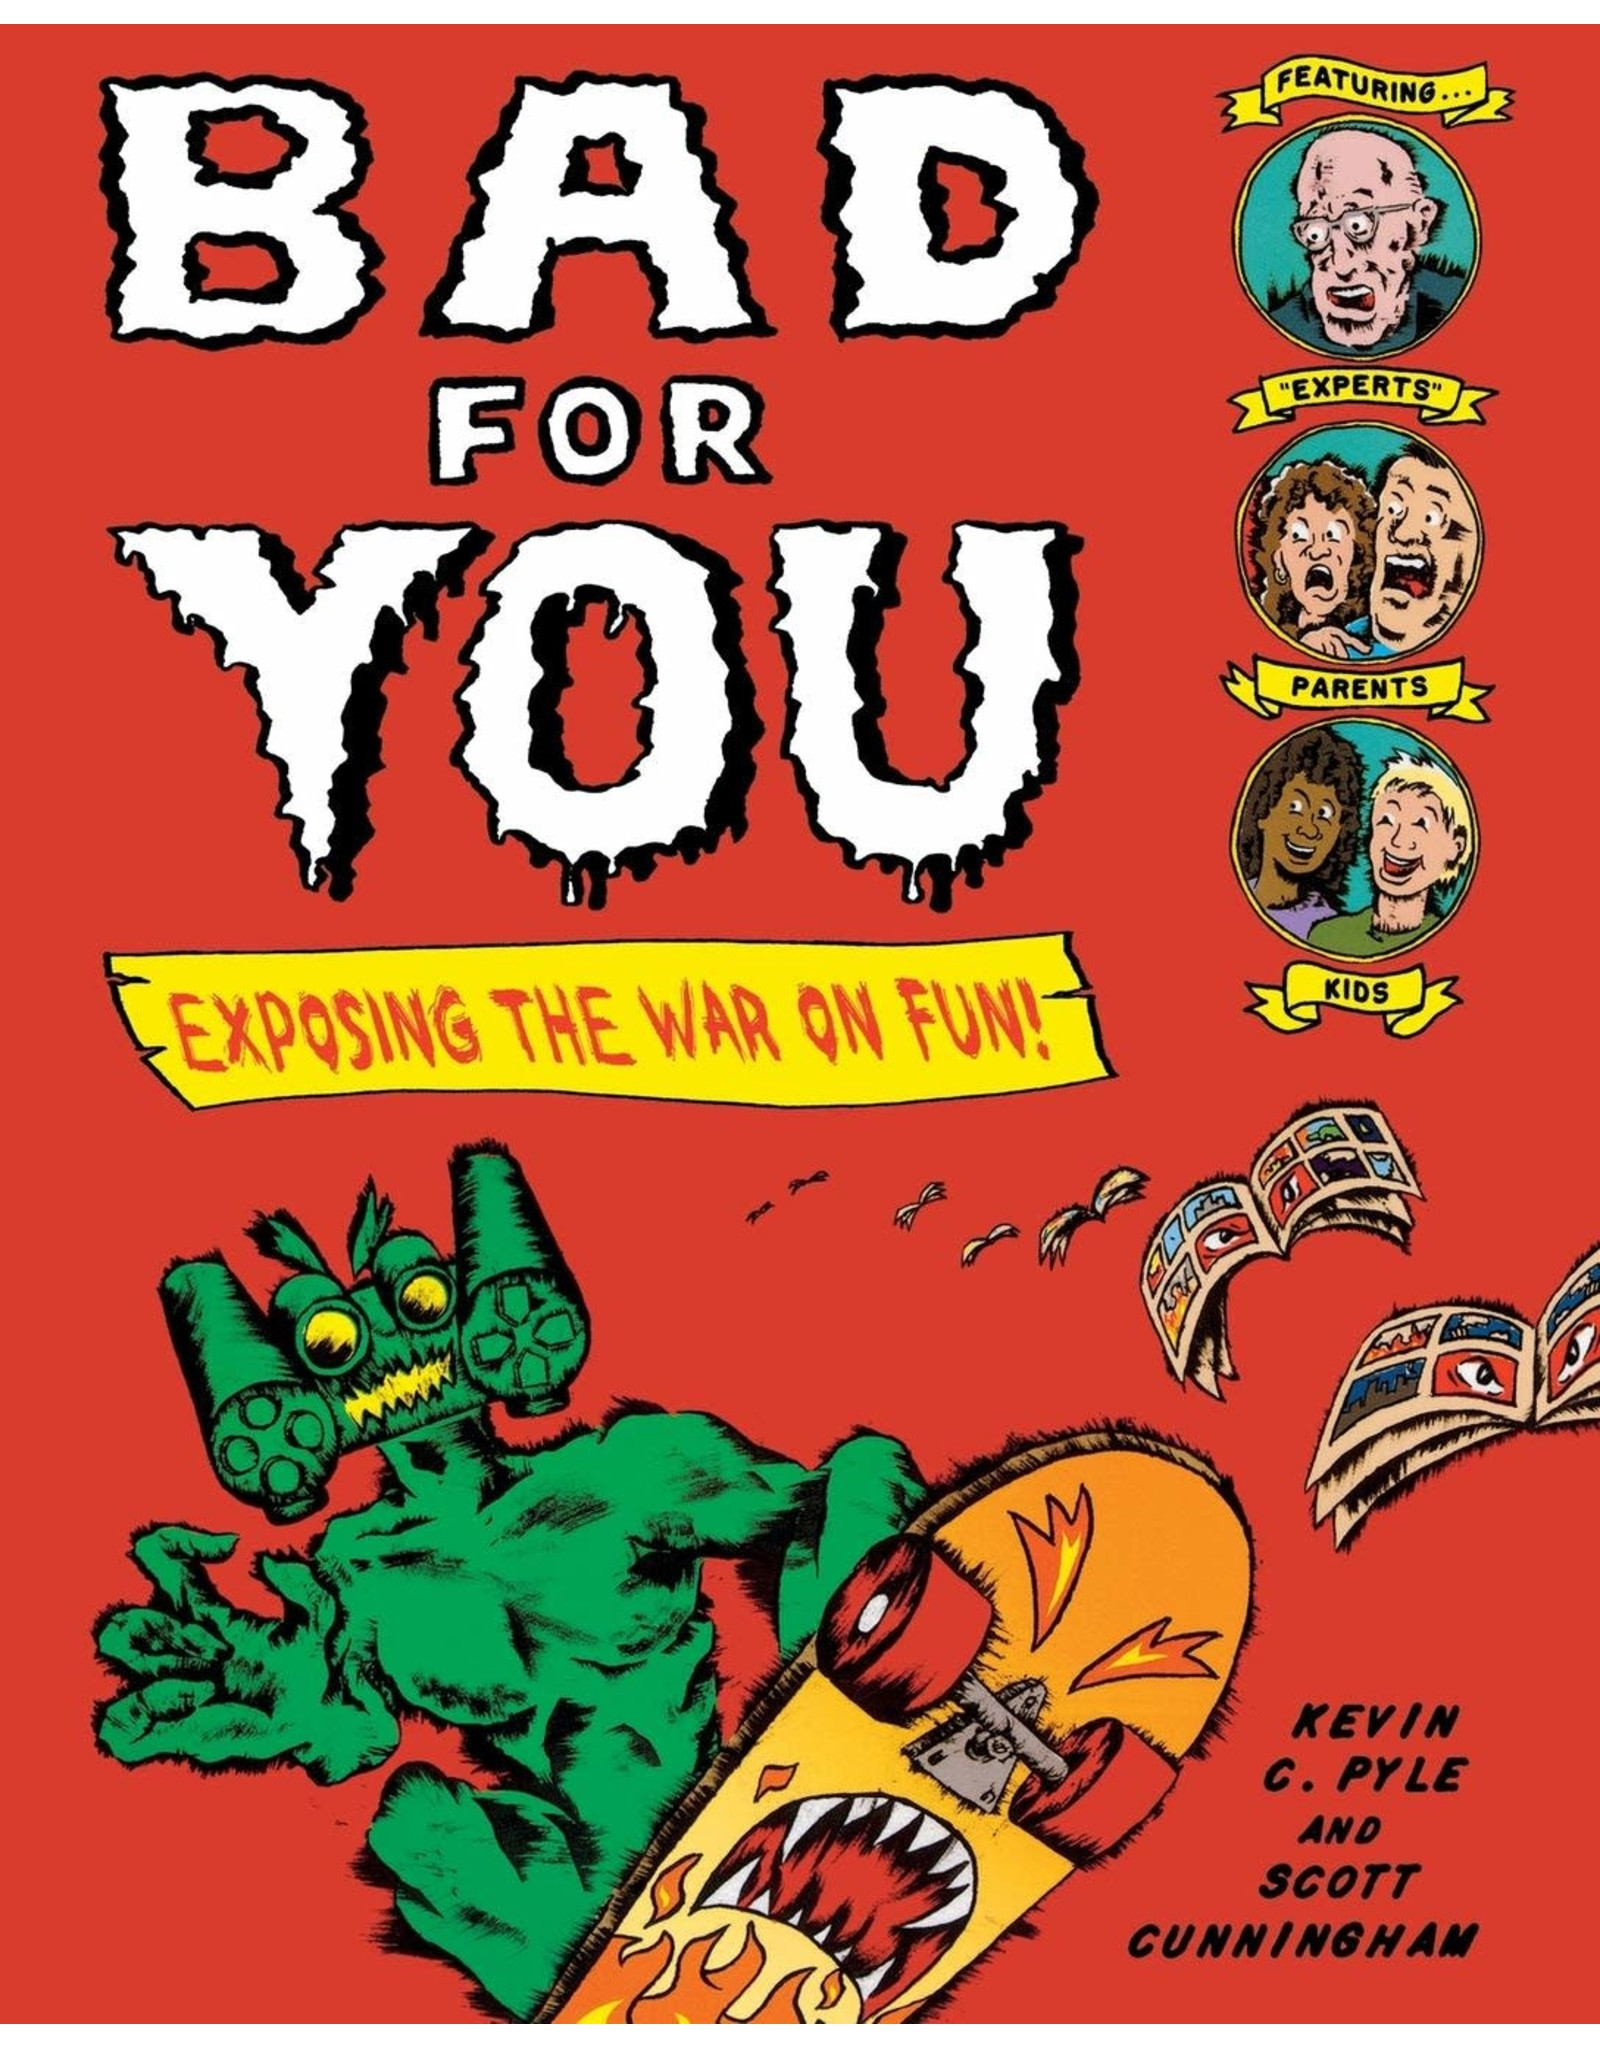 HENRY HOLT BAD FOR YOU EXPOSING THE WAR ON FUN